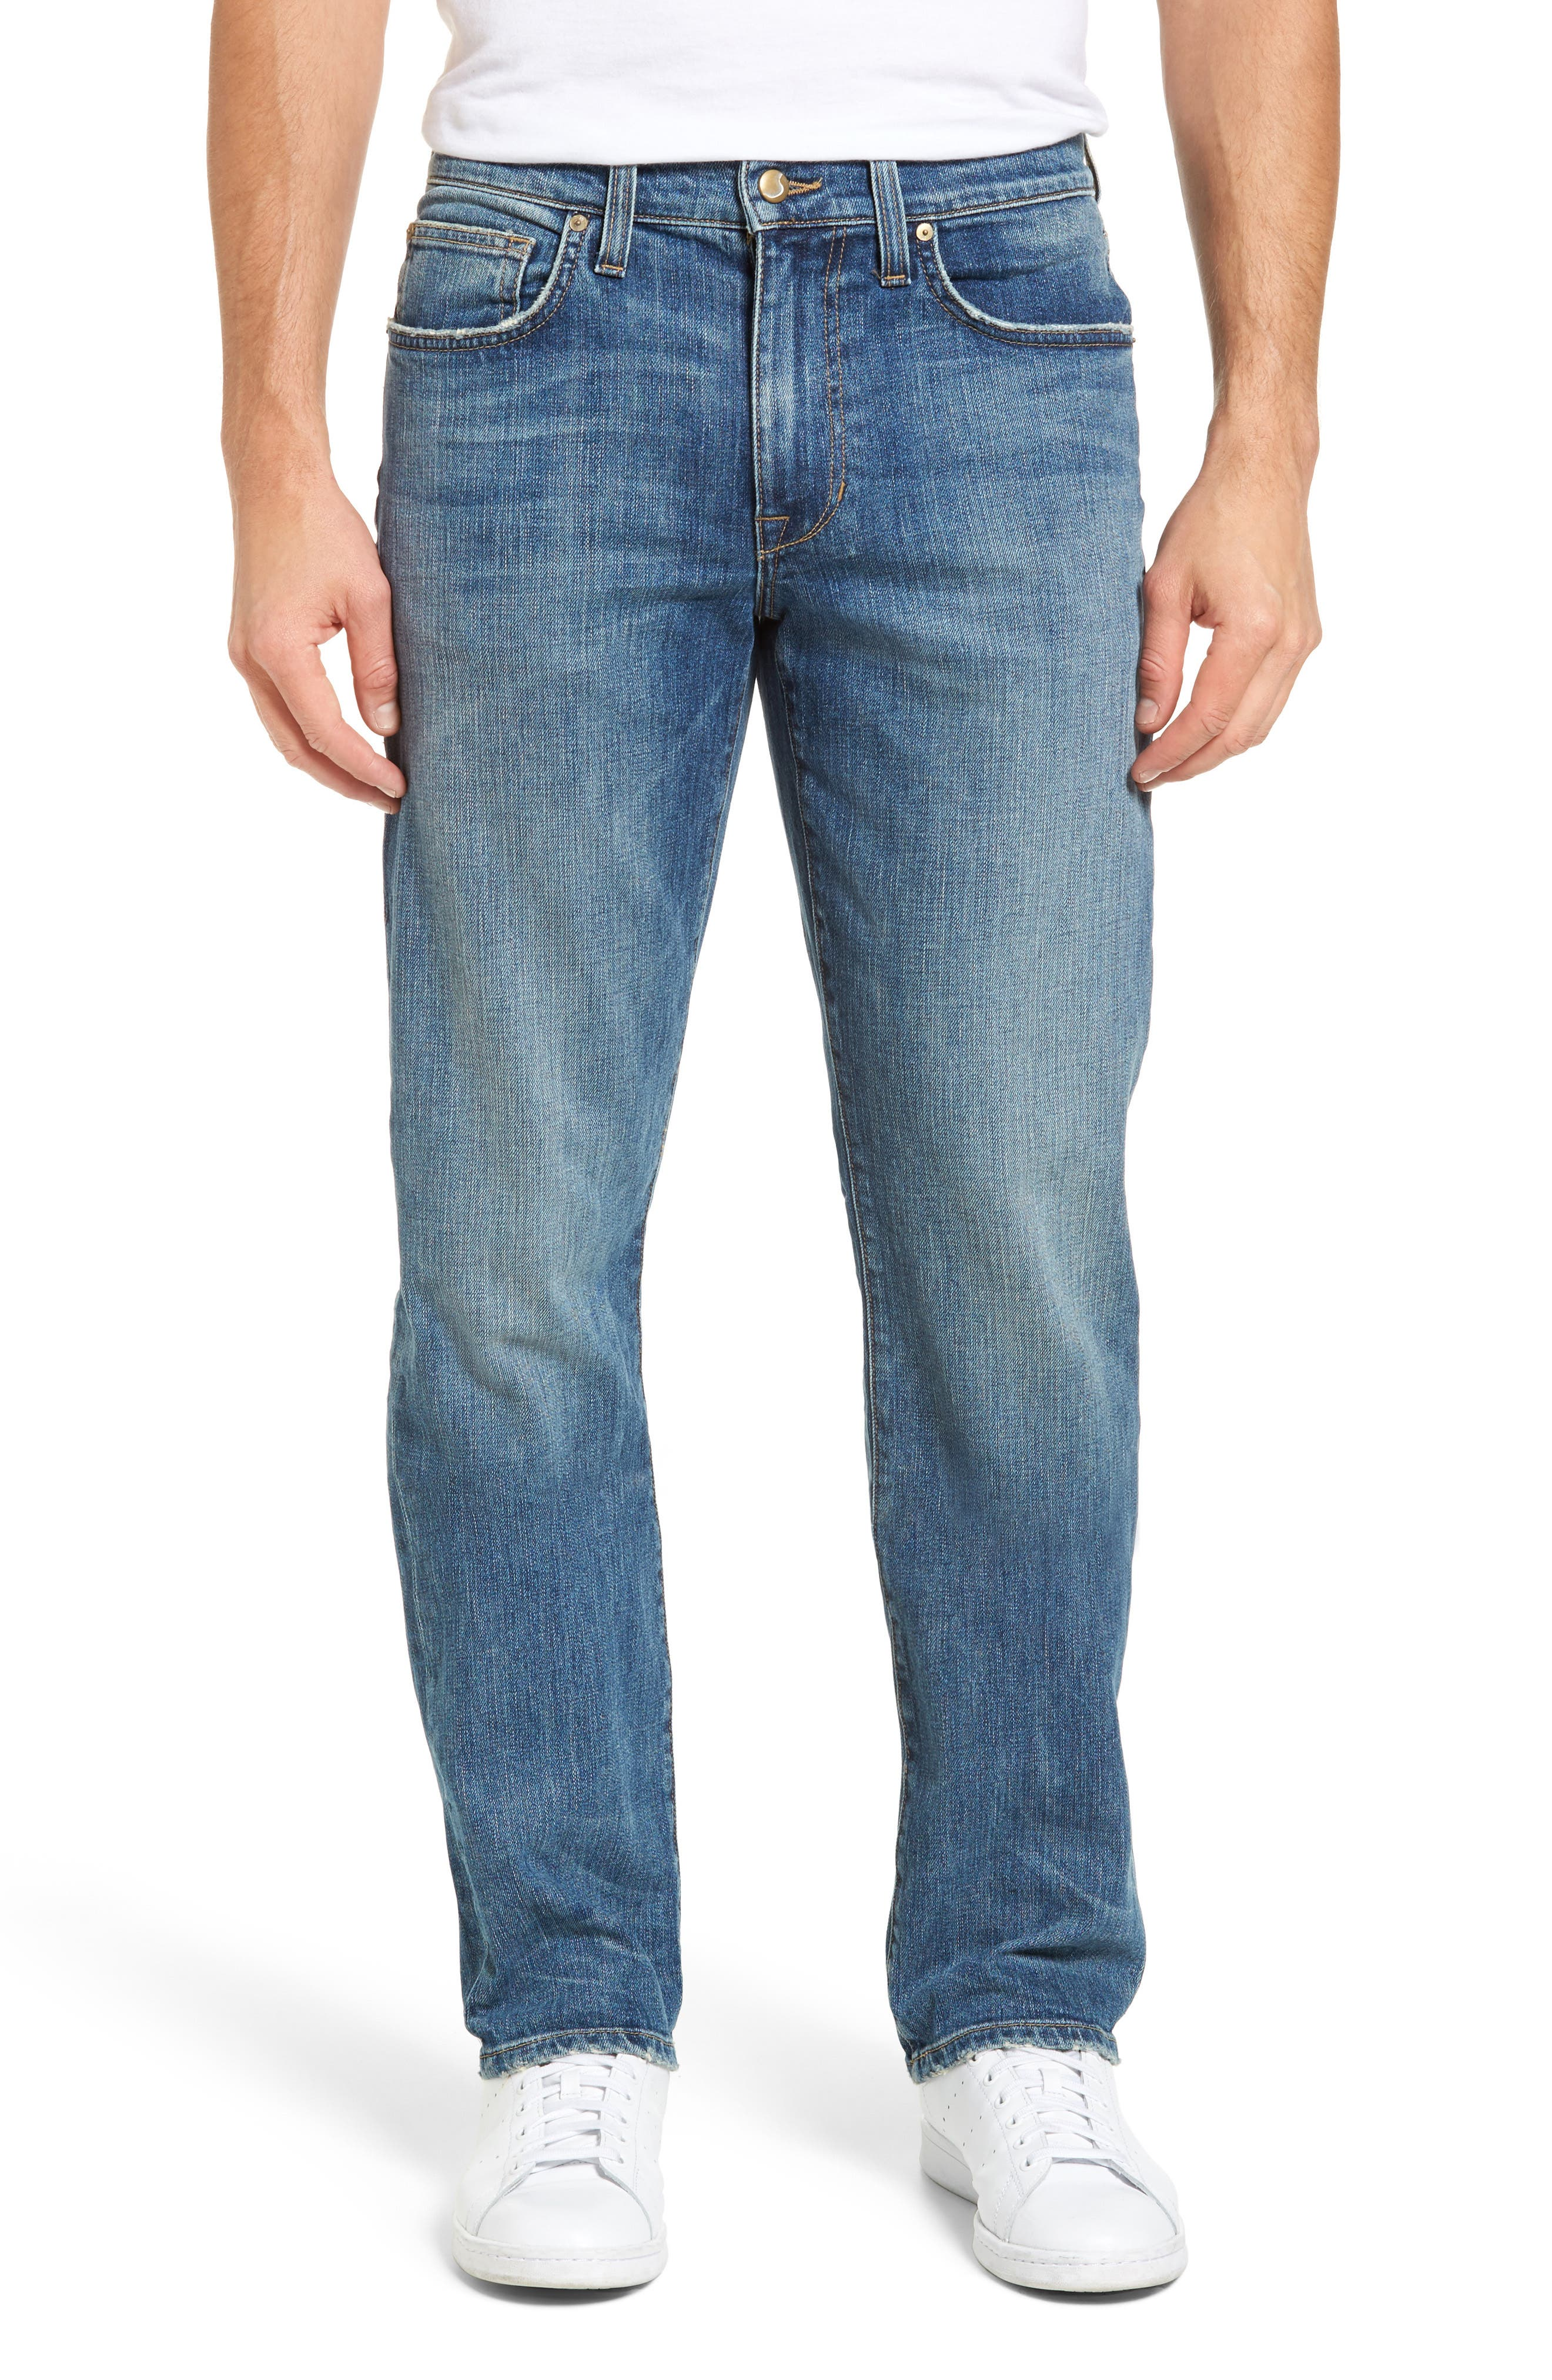 Brixton Slim Straight Fit Jeans,                         Main,                         color, 400